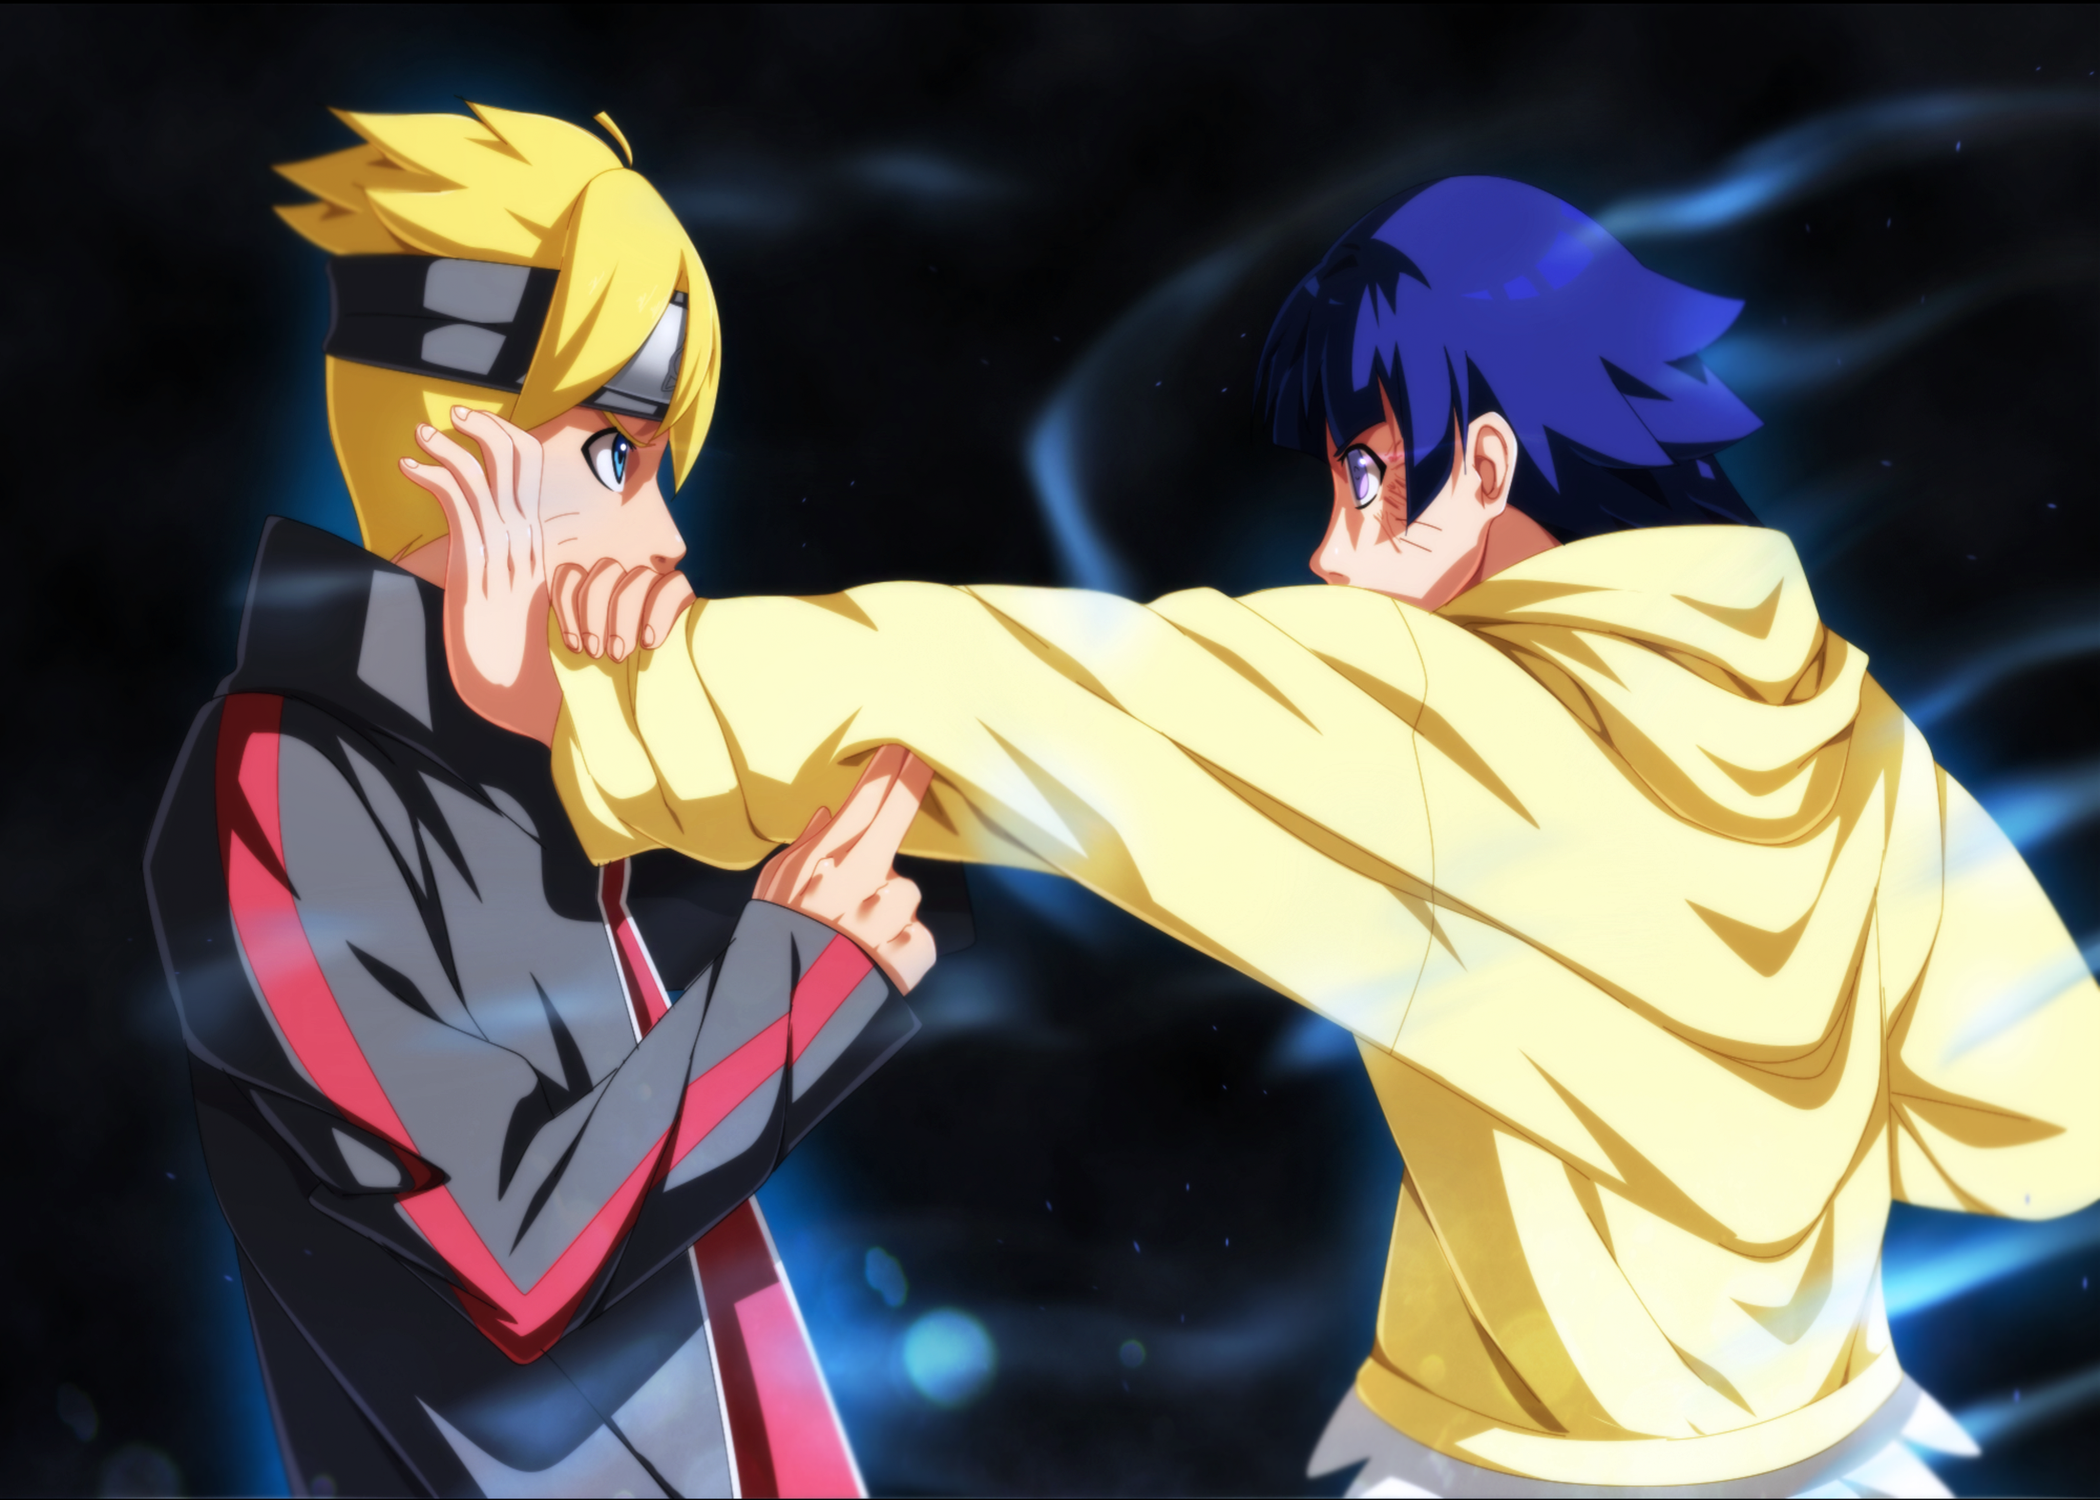 boruto and himawari full hd fond d cran and arri re plan